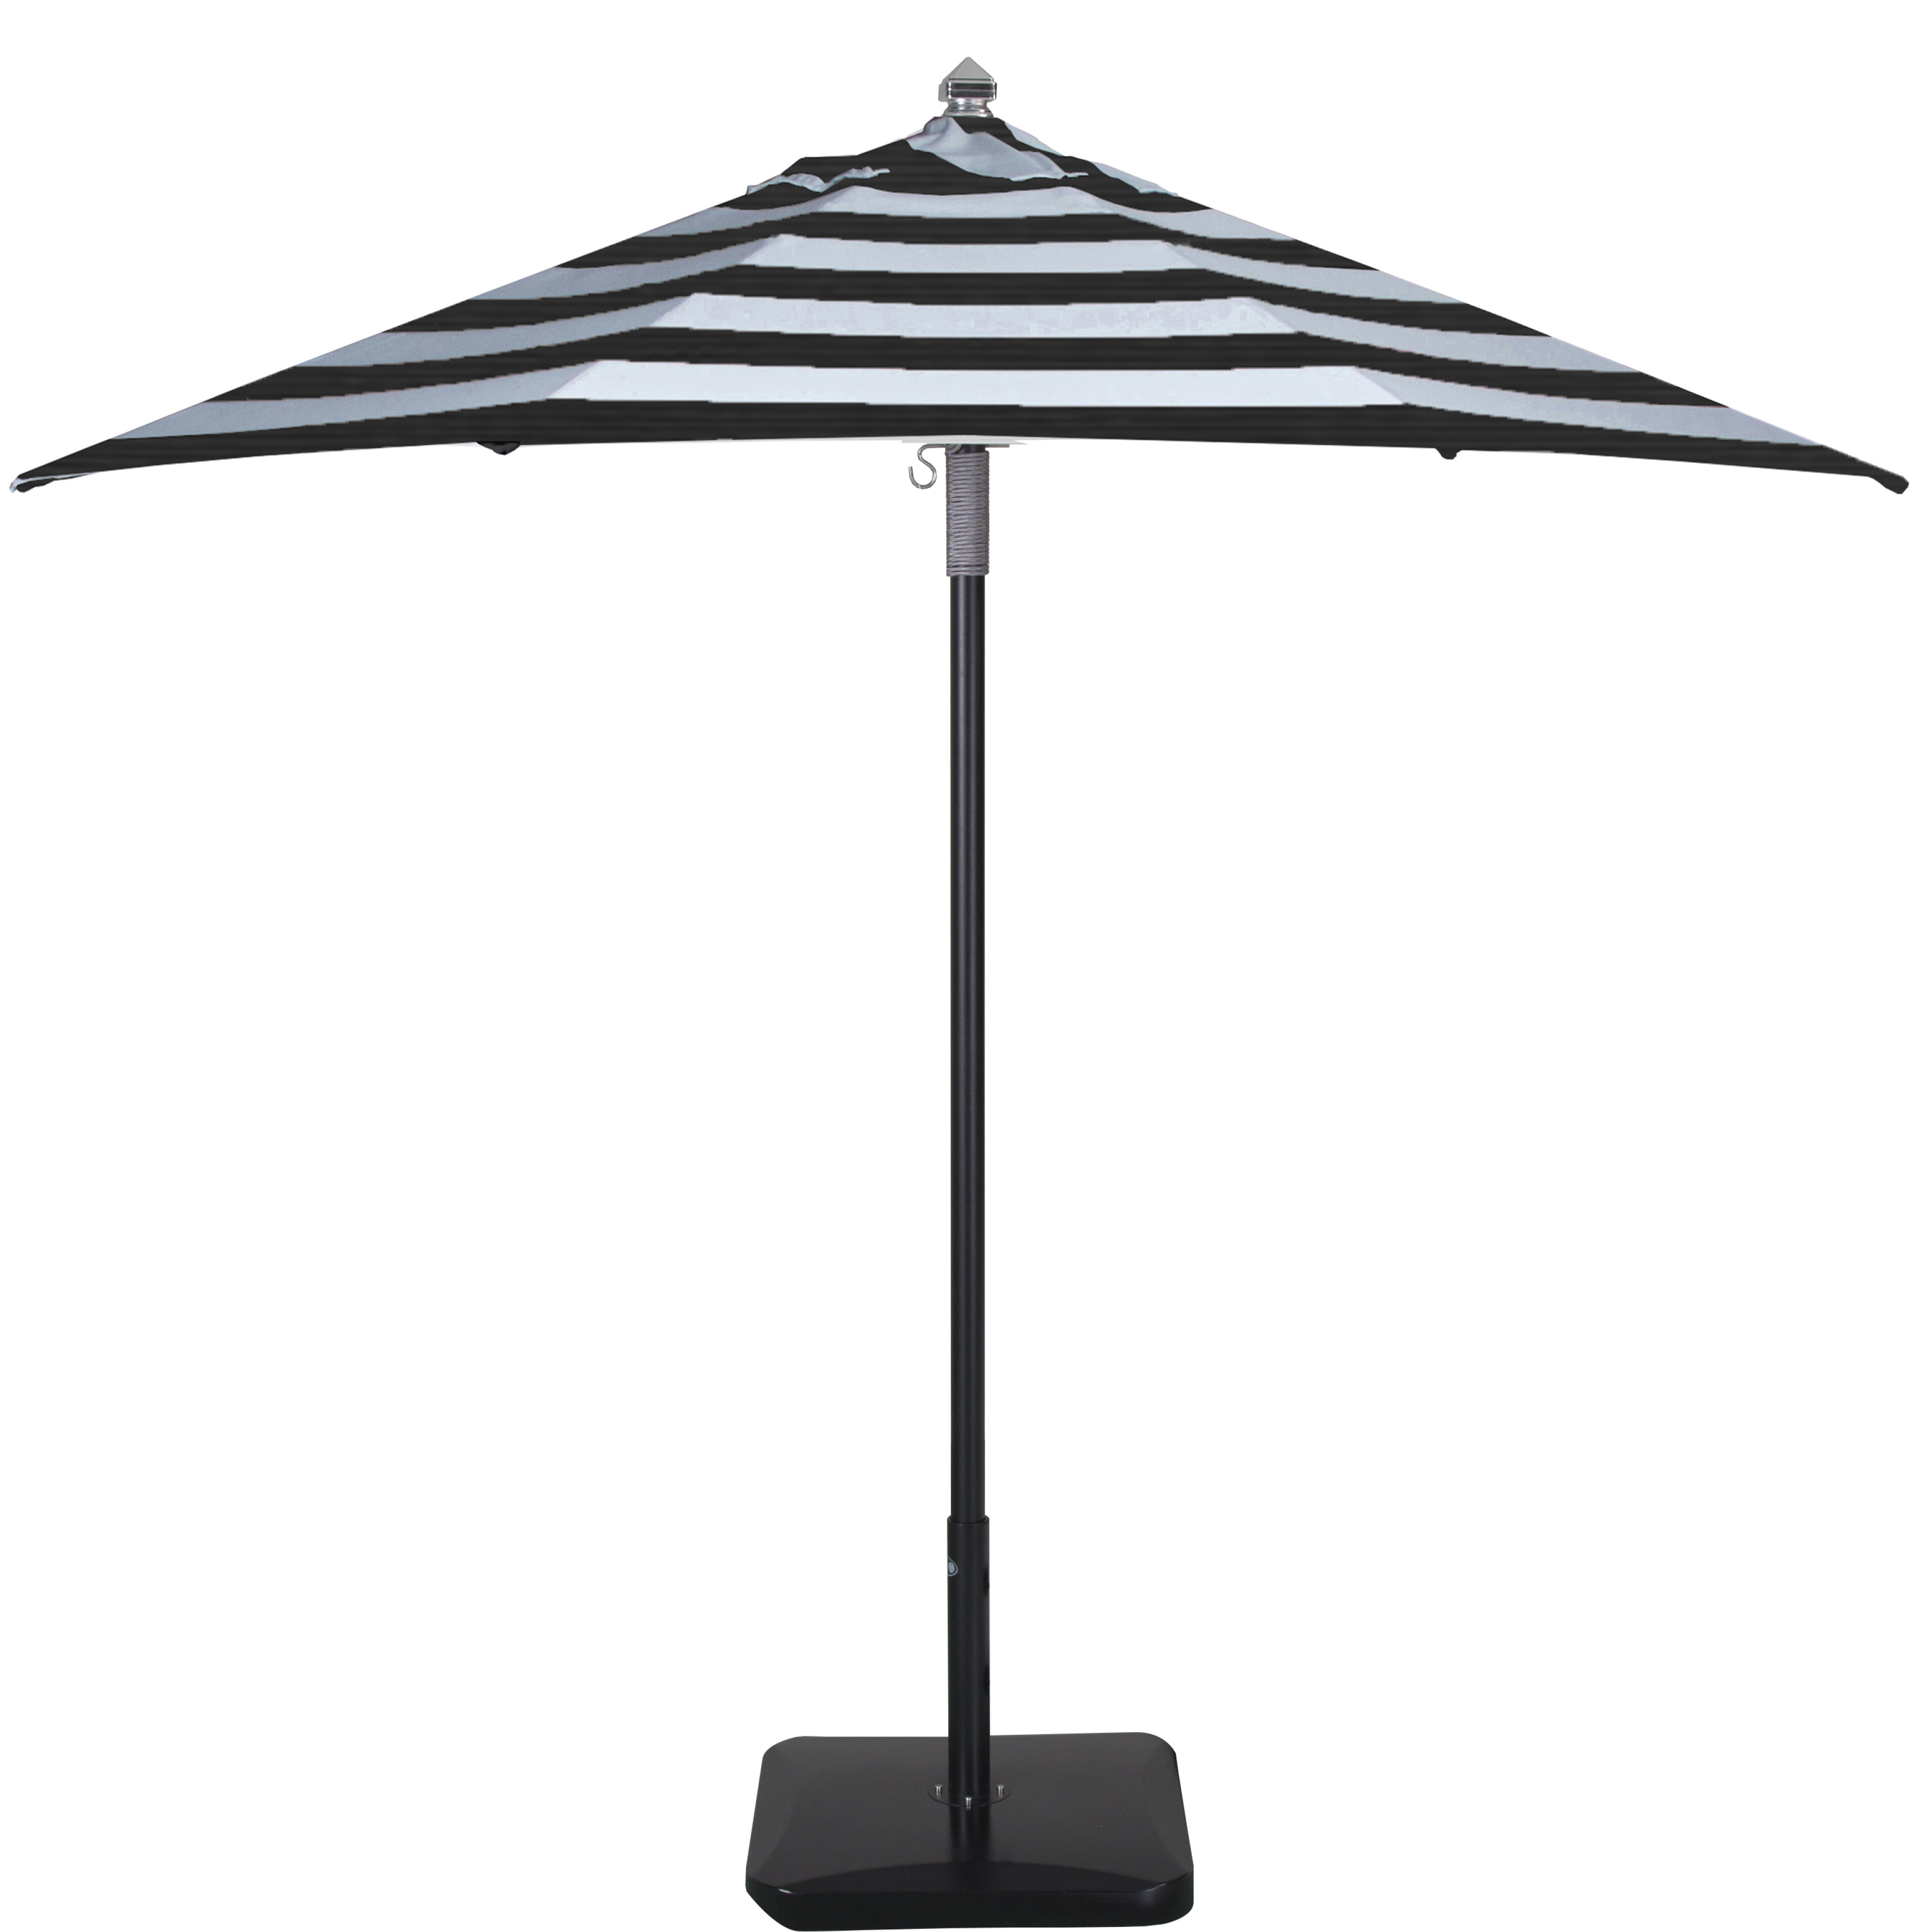 Centeno 9' Market Sunbrella Umbrella Regarding 2019 Wiebe Auto Tilt Square Market Sunbrella Umbrellas (View 5 of 20)